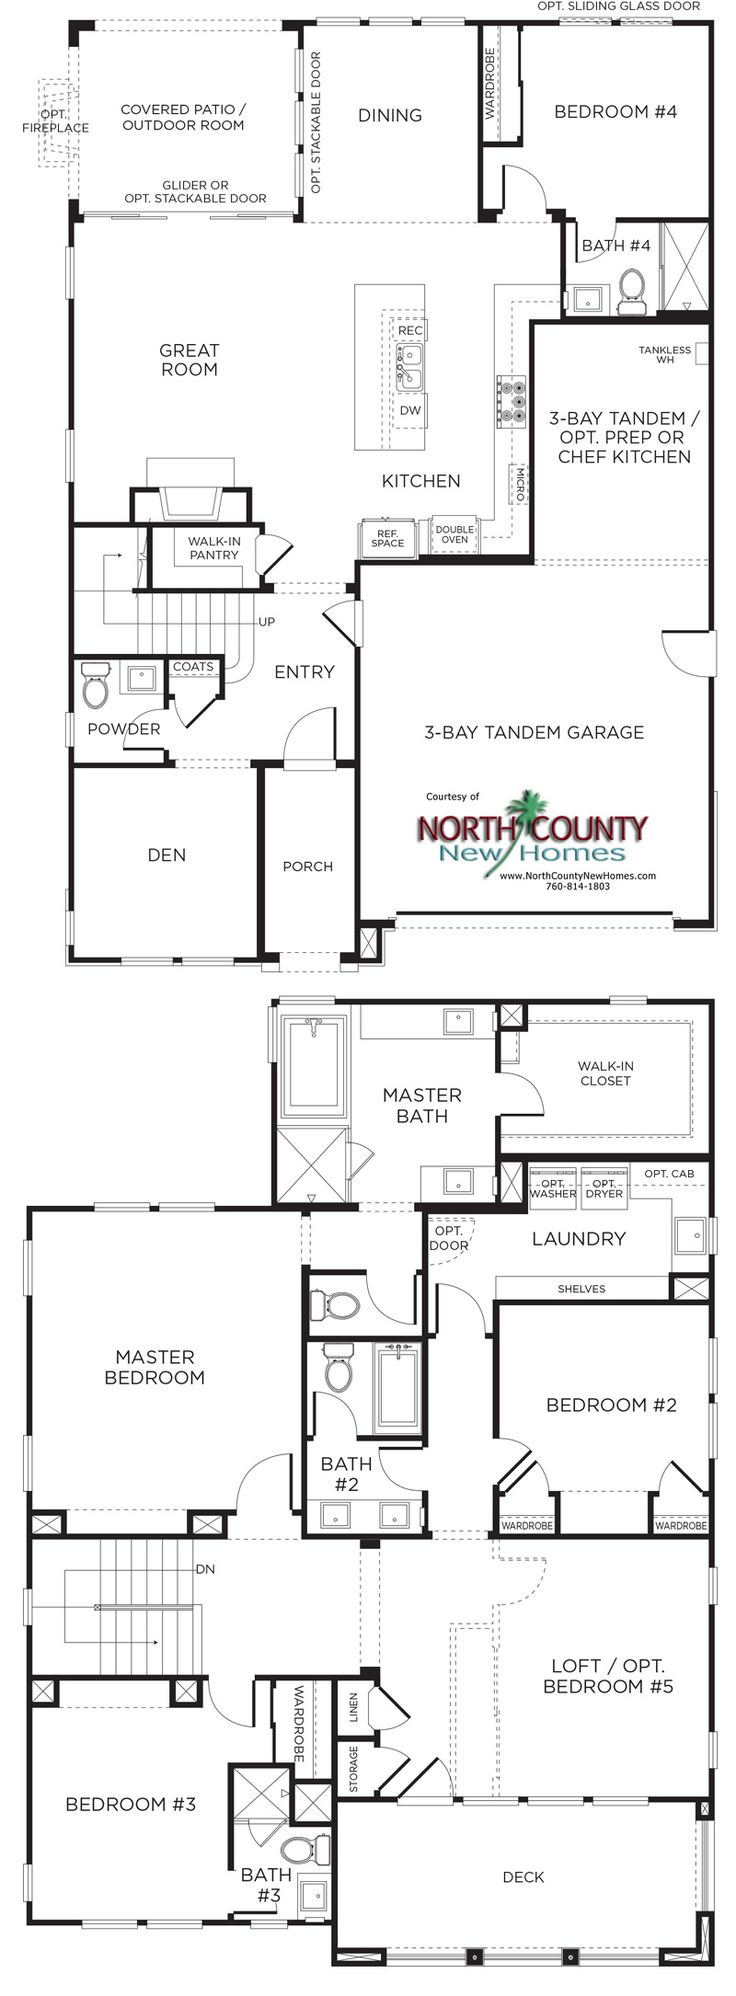 1000+ images about New Home Floor Plans on Pinterest - ^